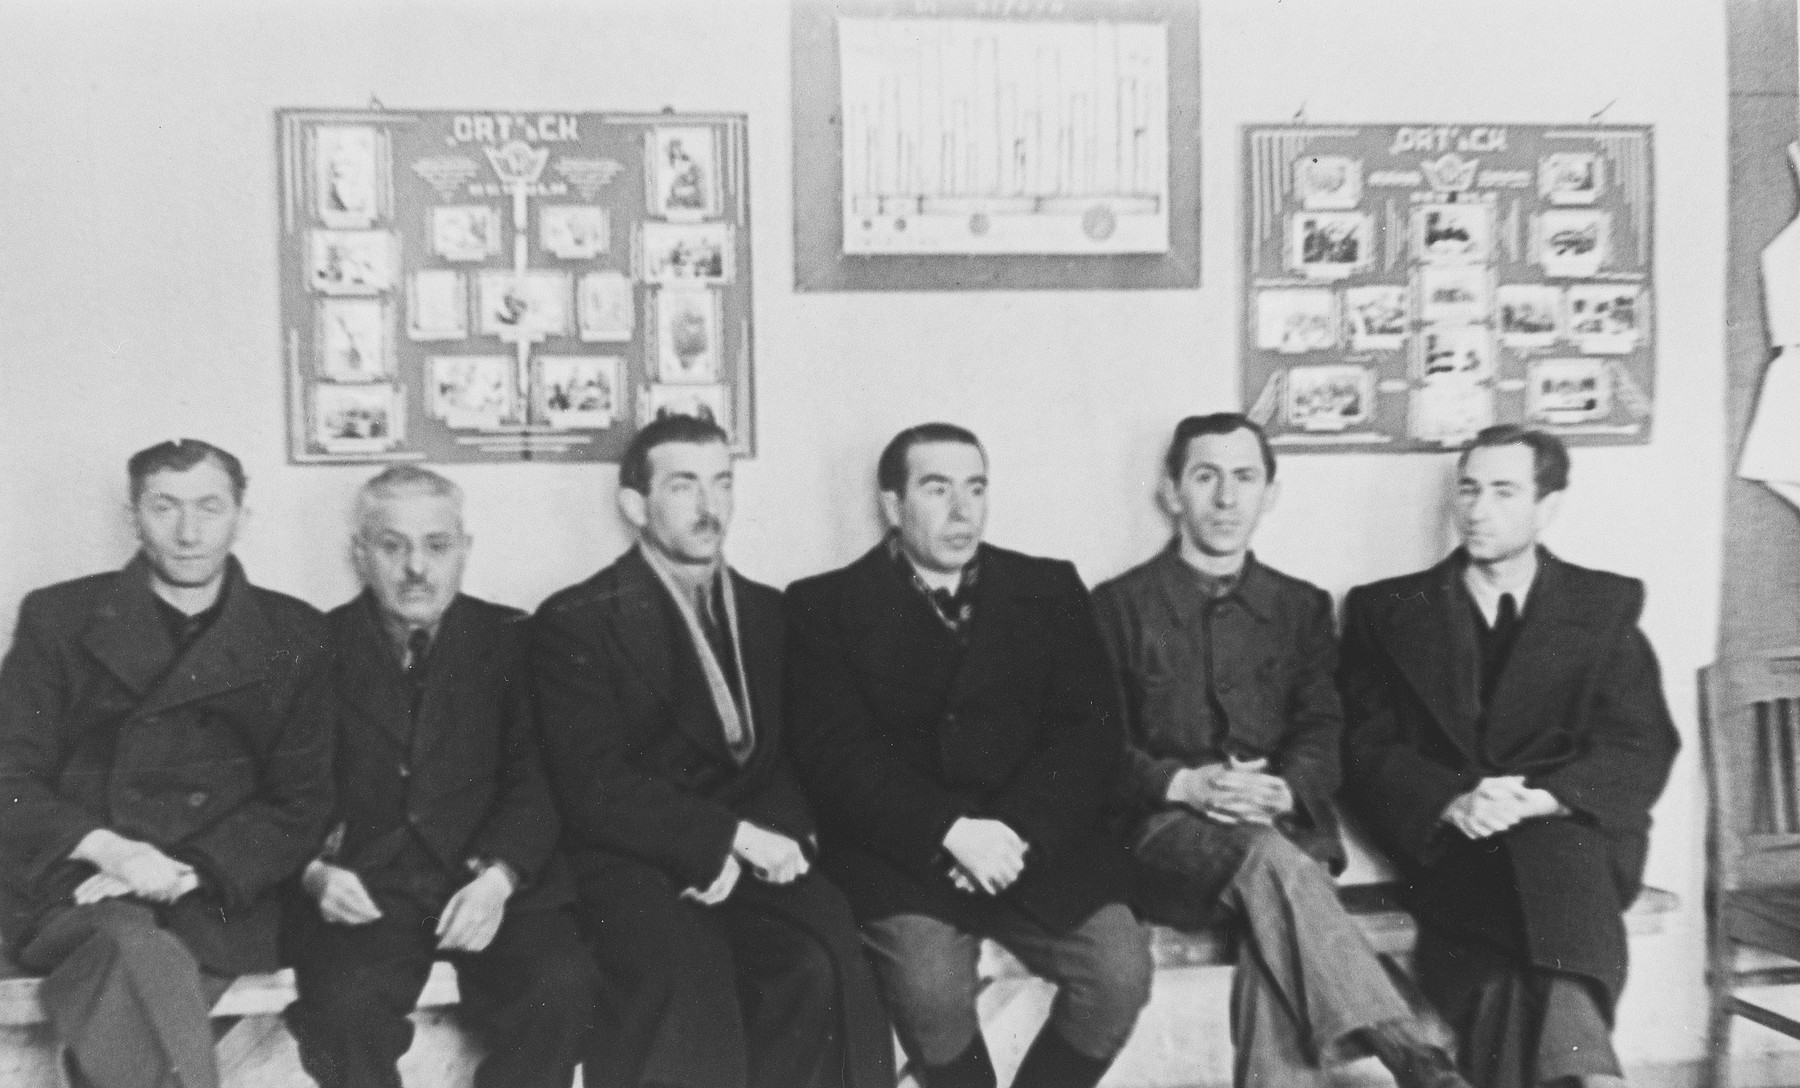 Edward Cittron and four other men sit in front of photo display in the ORT vocational school in Neu-Ulm.  Edward Cittron was the director of the school.  He is sitting in the center.  Second from the left is his father-in-law, Leon Grad and between them is Mr. Weinholz.